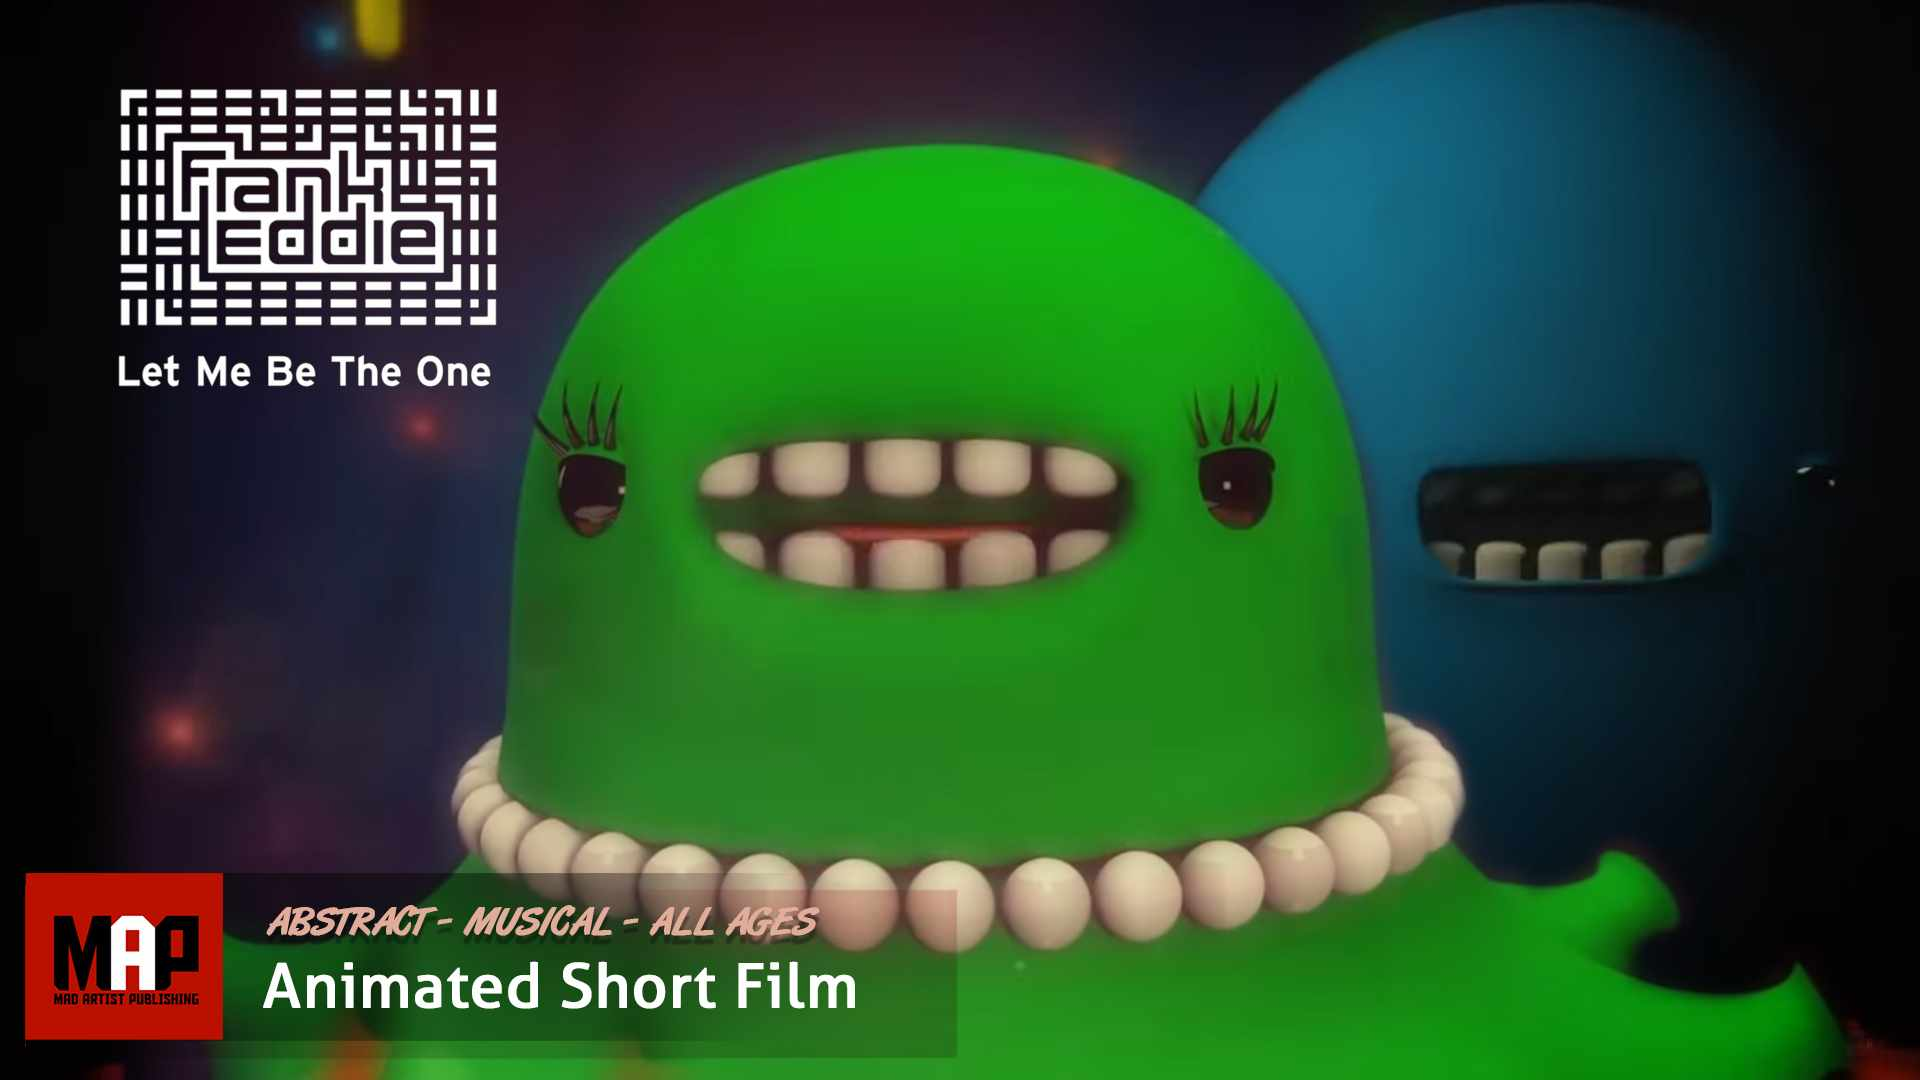 SURREAL CGI 3D Animation Music Video ** FRANK EDDIE: LET ME BE THE ONE ** by Kaplin & Airside Nippon